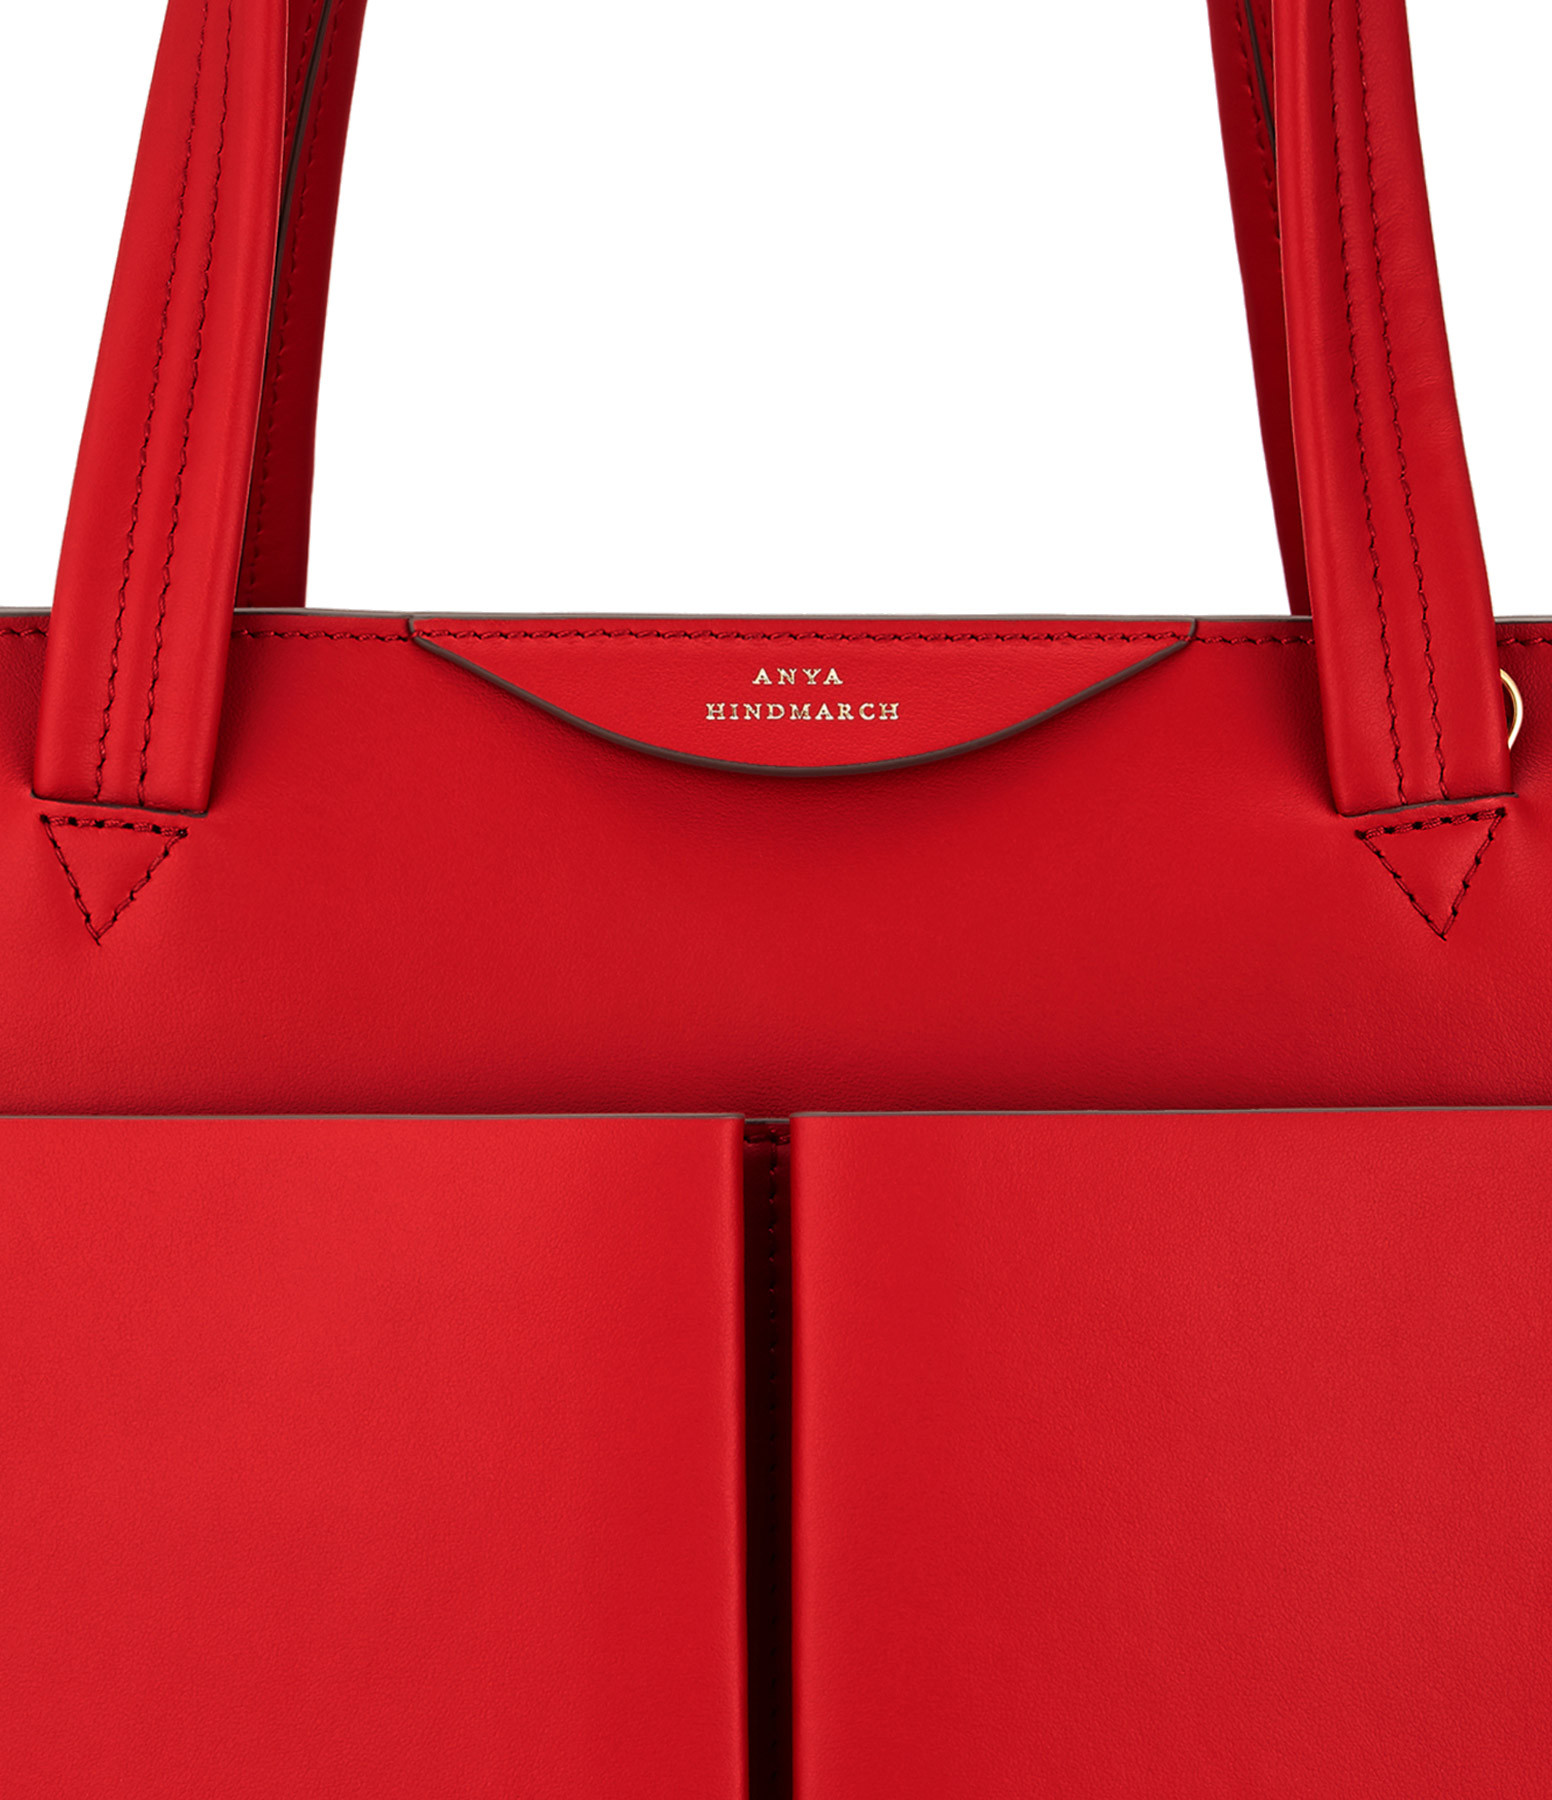 ANYA HINDMARCH - Sac Nevis Rouge Flamme Brillant